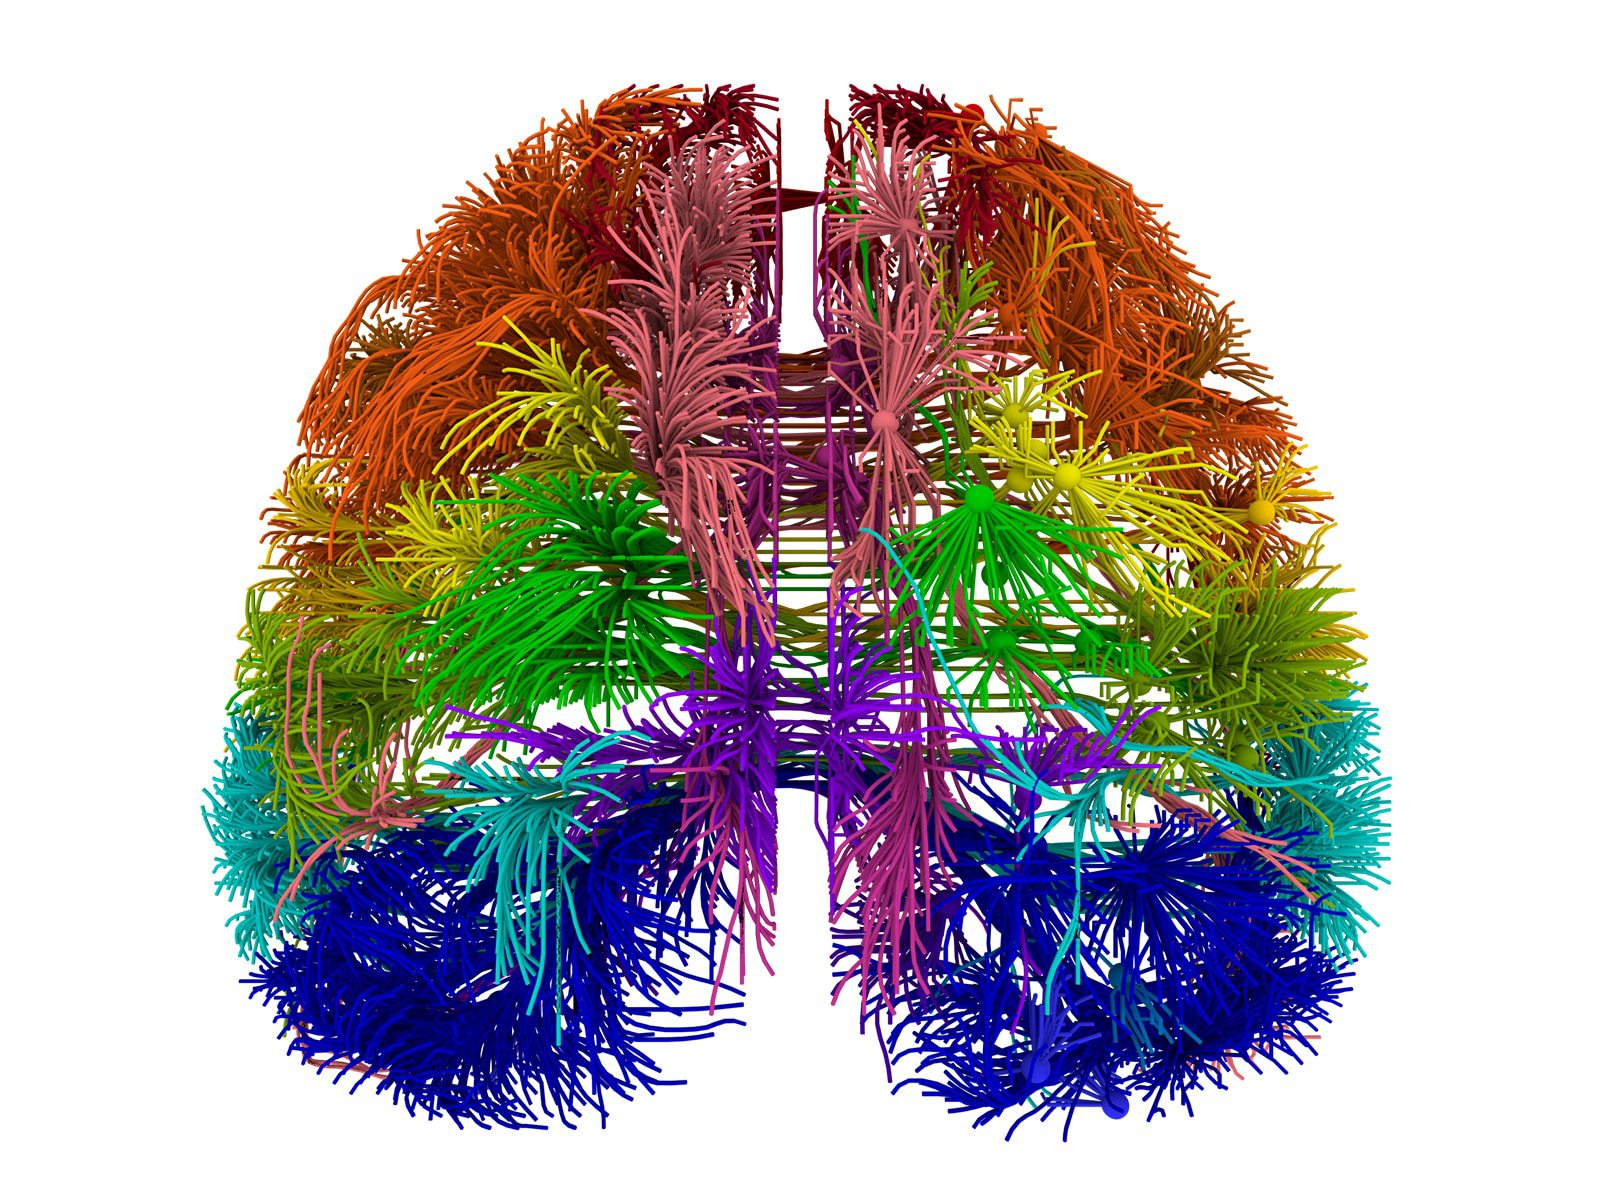 A brain scan which shows the connections between areas of the brain